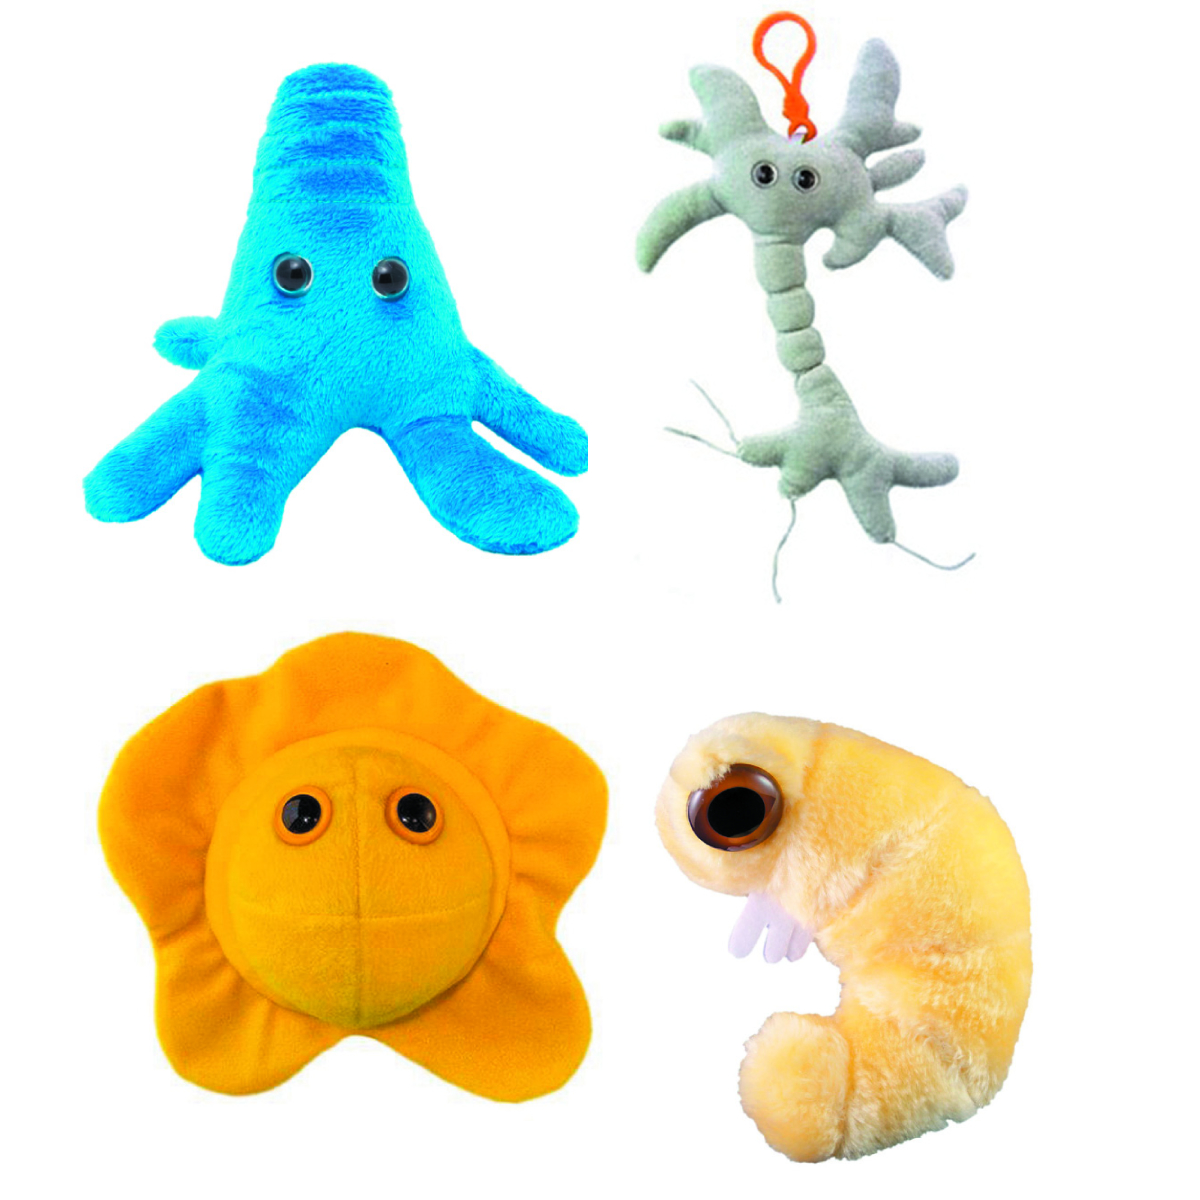 GIANT MICROBES PLUSH KEY CHAIN BEST SELLER DIS